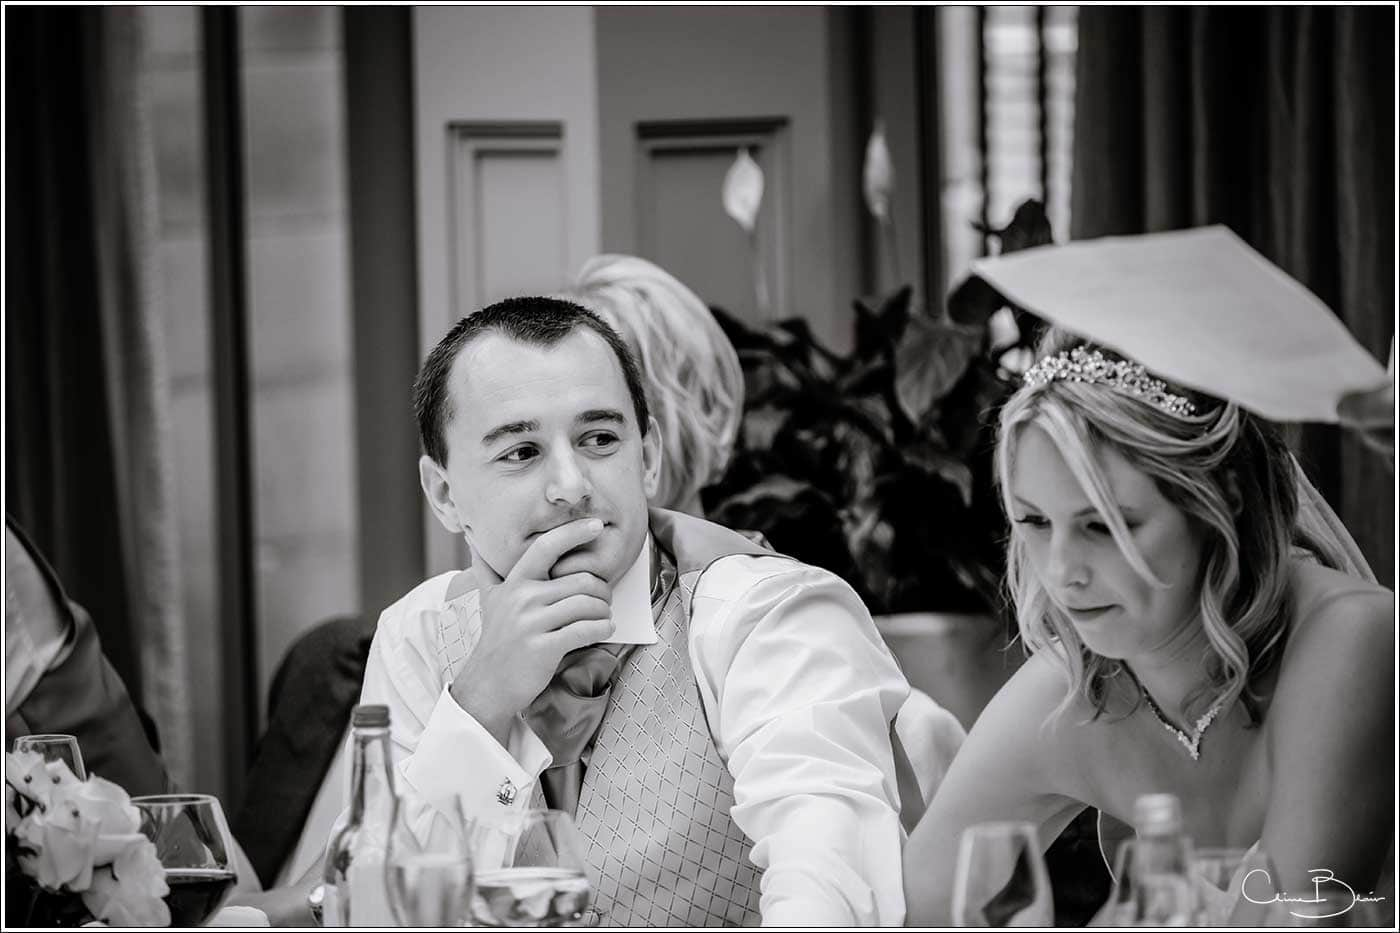 Groom looking at bride during the speeches-by Hampton manor wedding photographer Clive Blair Photography